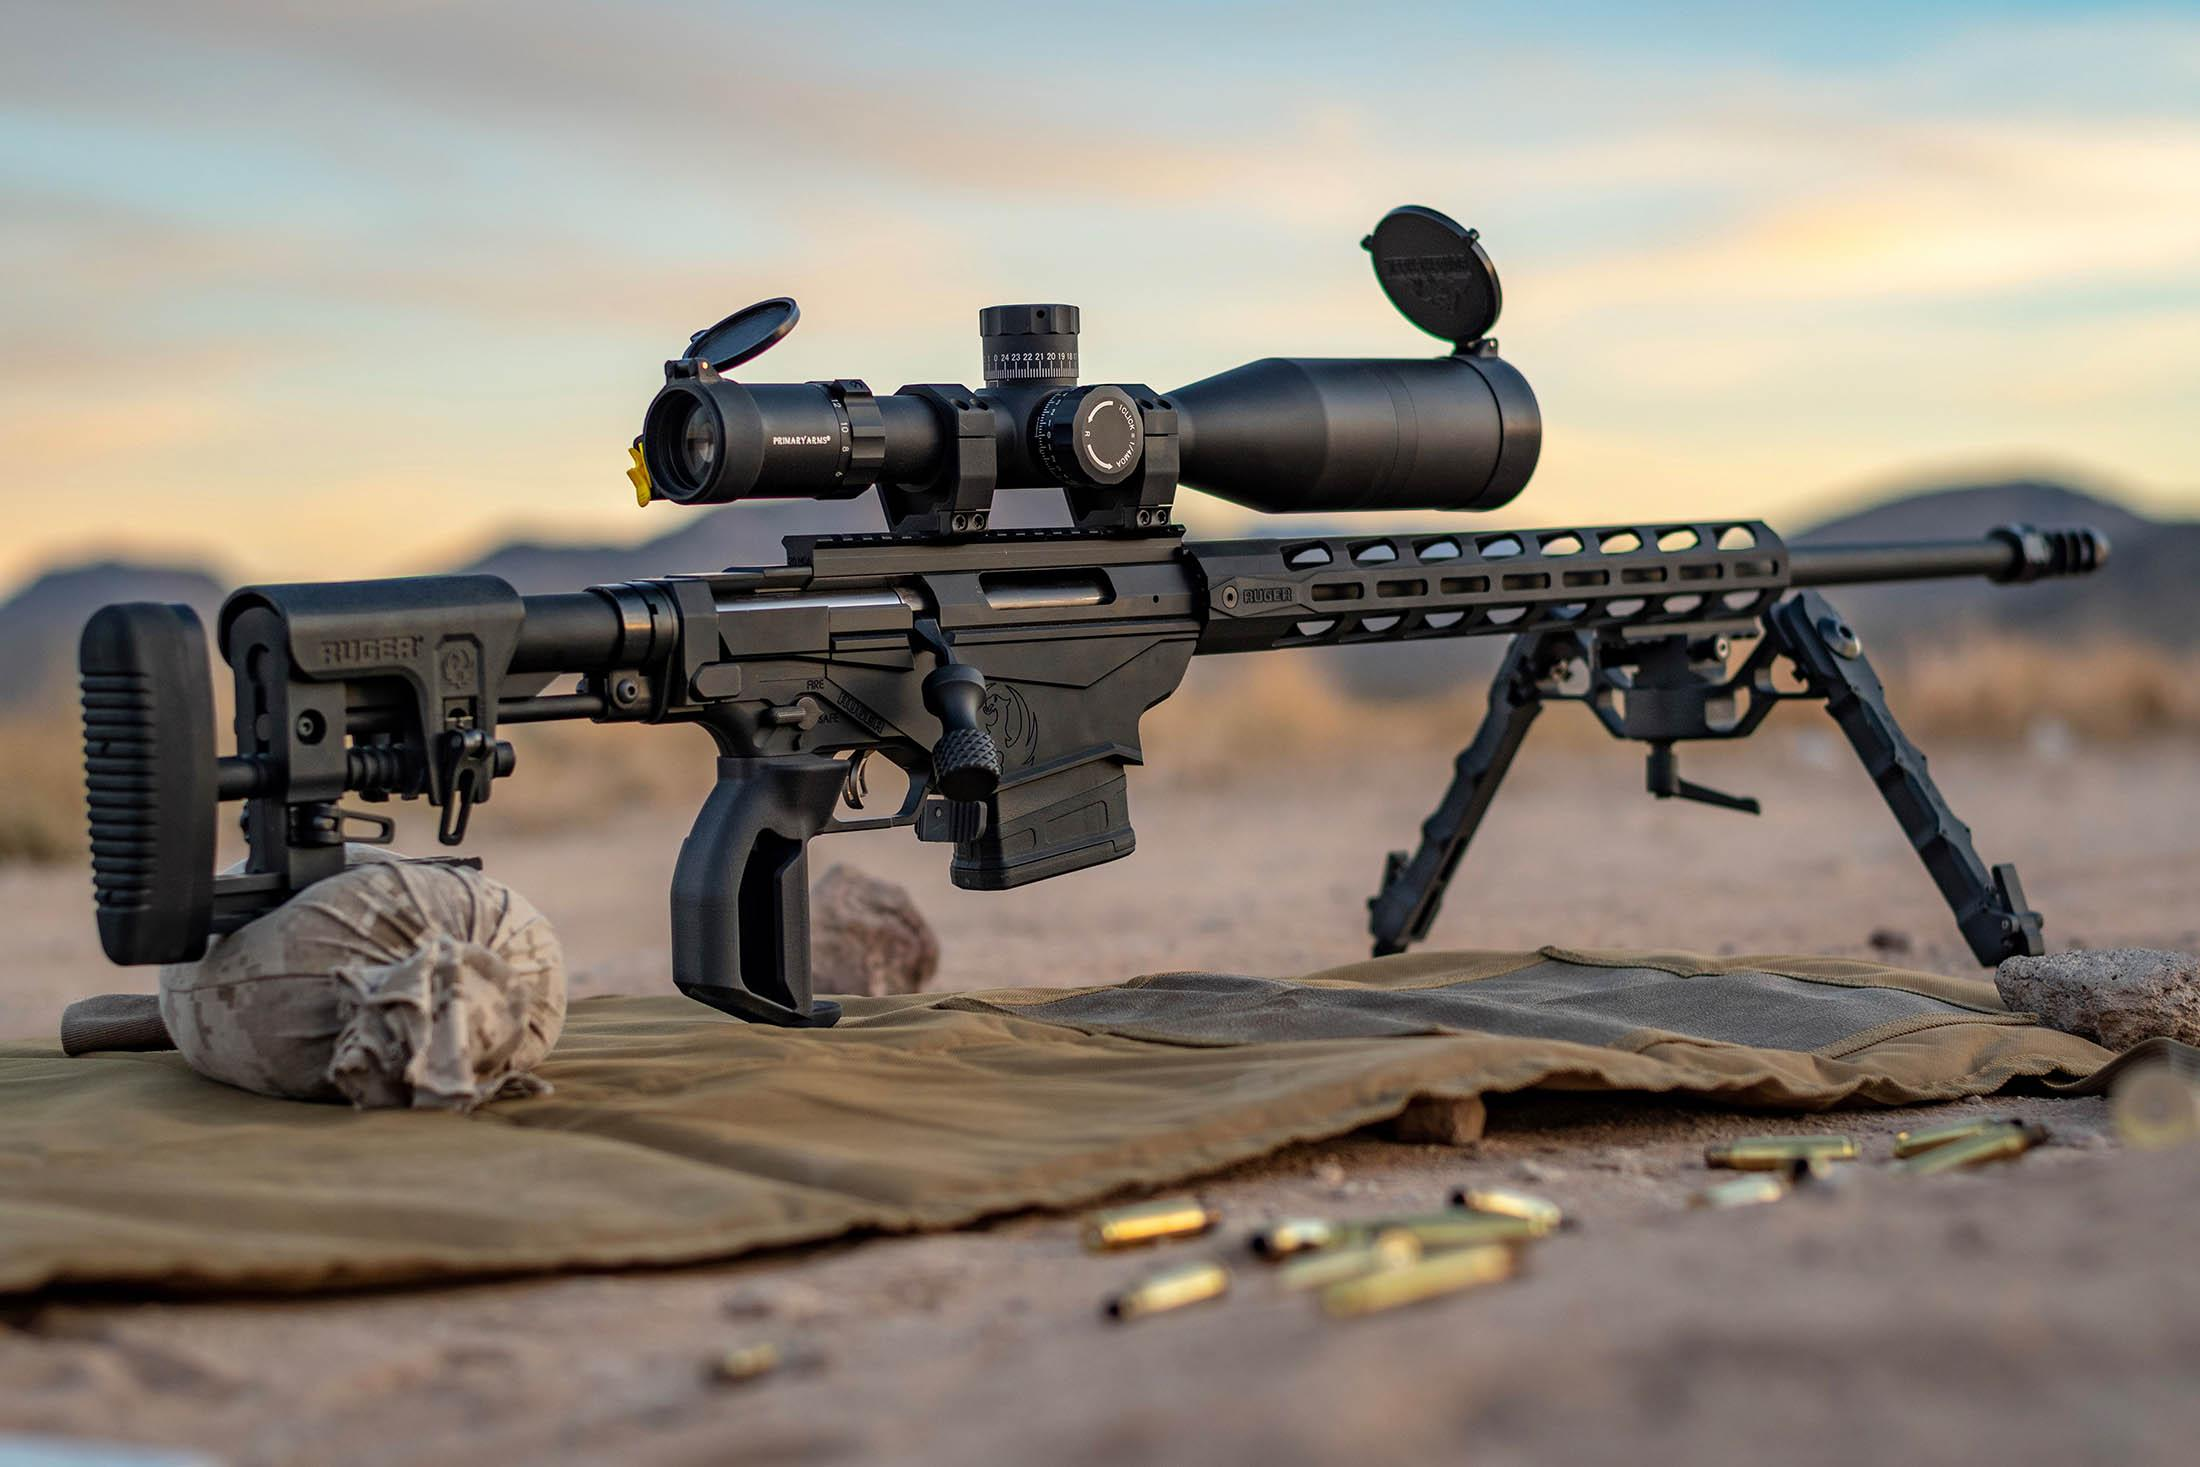 Primary Arms PLX5 6-30x56mm precision rifle scope with Athena BRP MOA reticle on a custom precision rifle